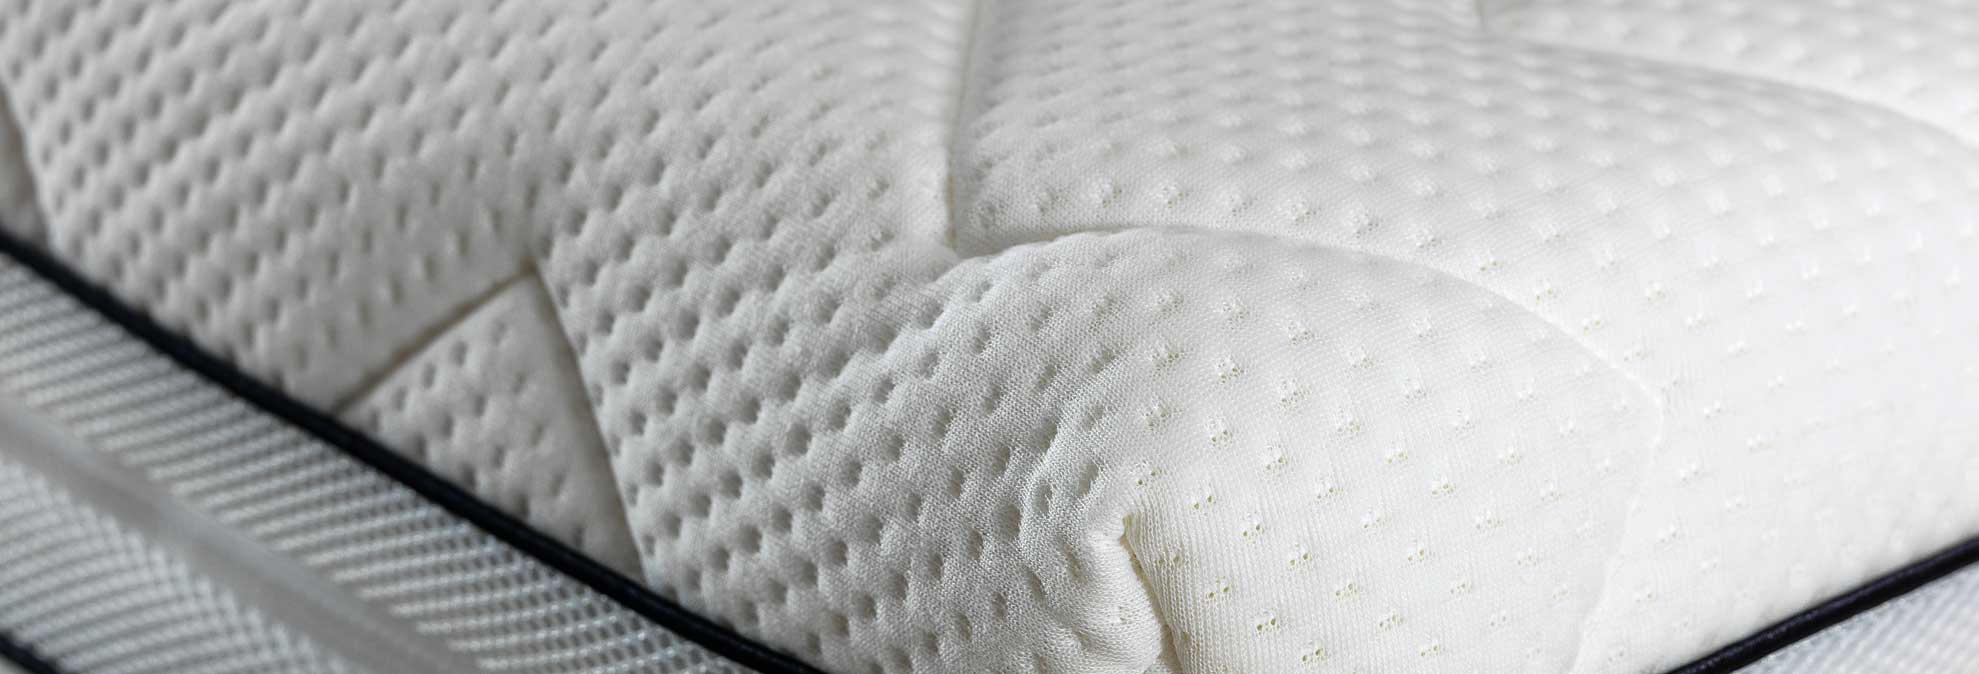 More From Consumer Reports. Best and Worst Mattress Brands